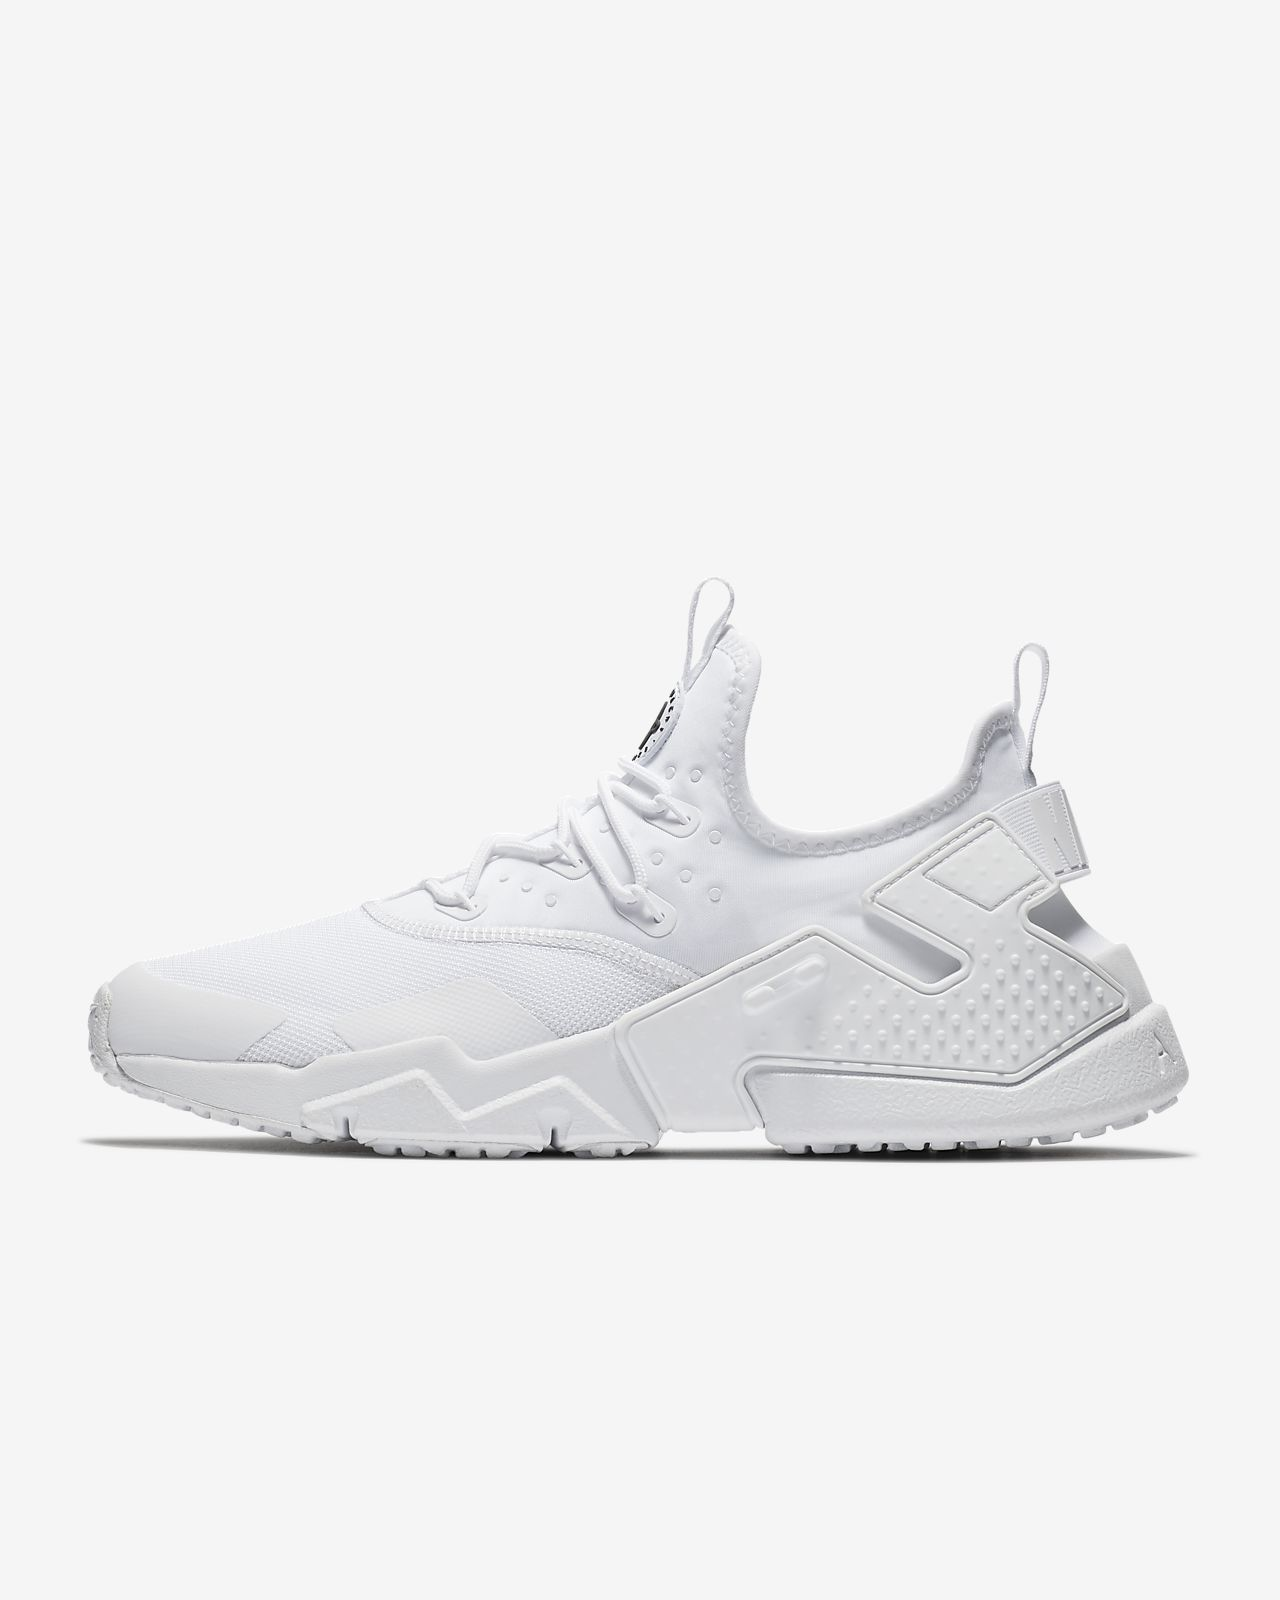 92368bf4c8c6 Nike Air Huarache Drift Men s Shoe. Nike.com